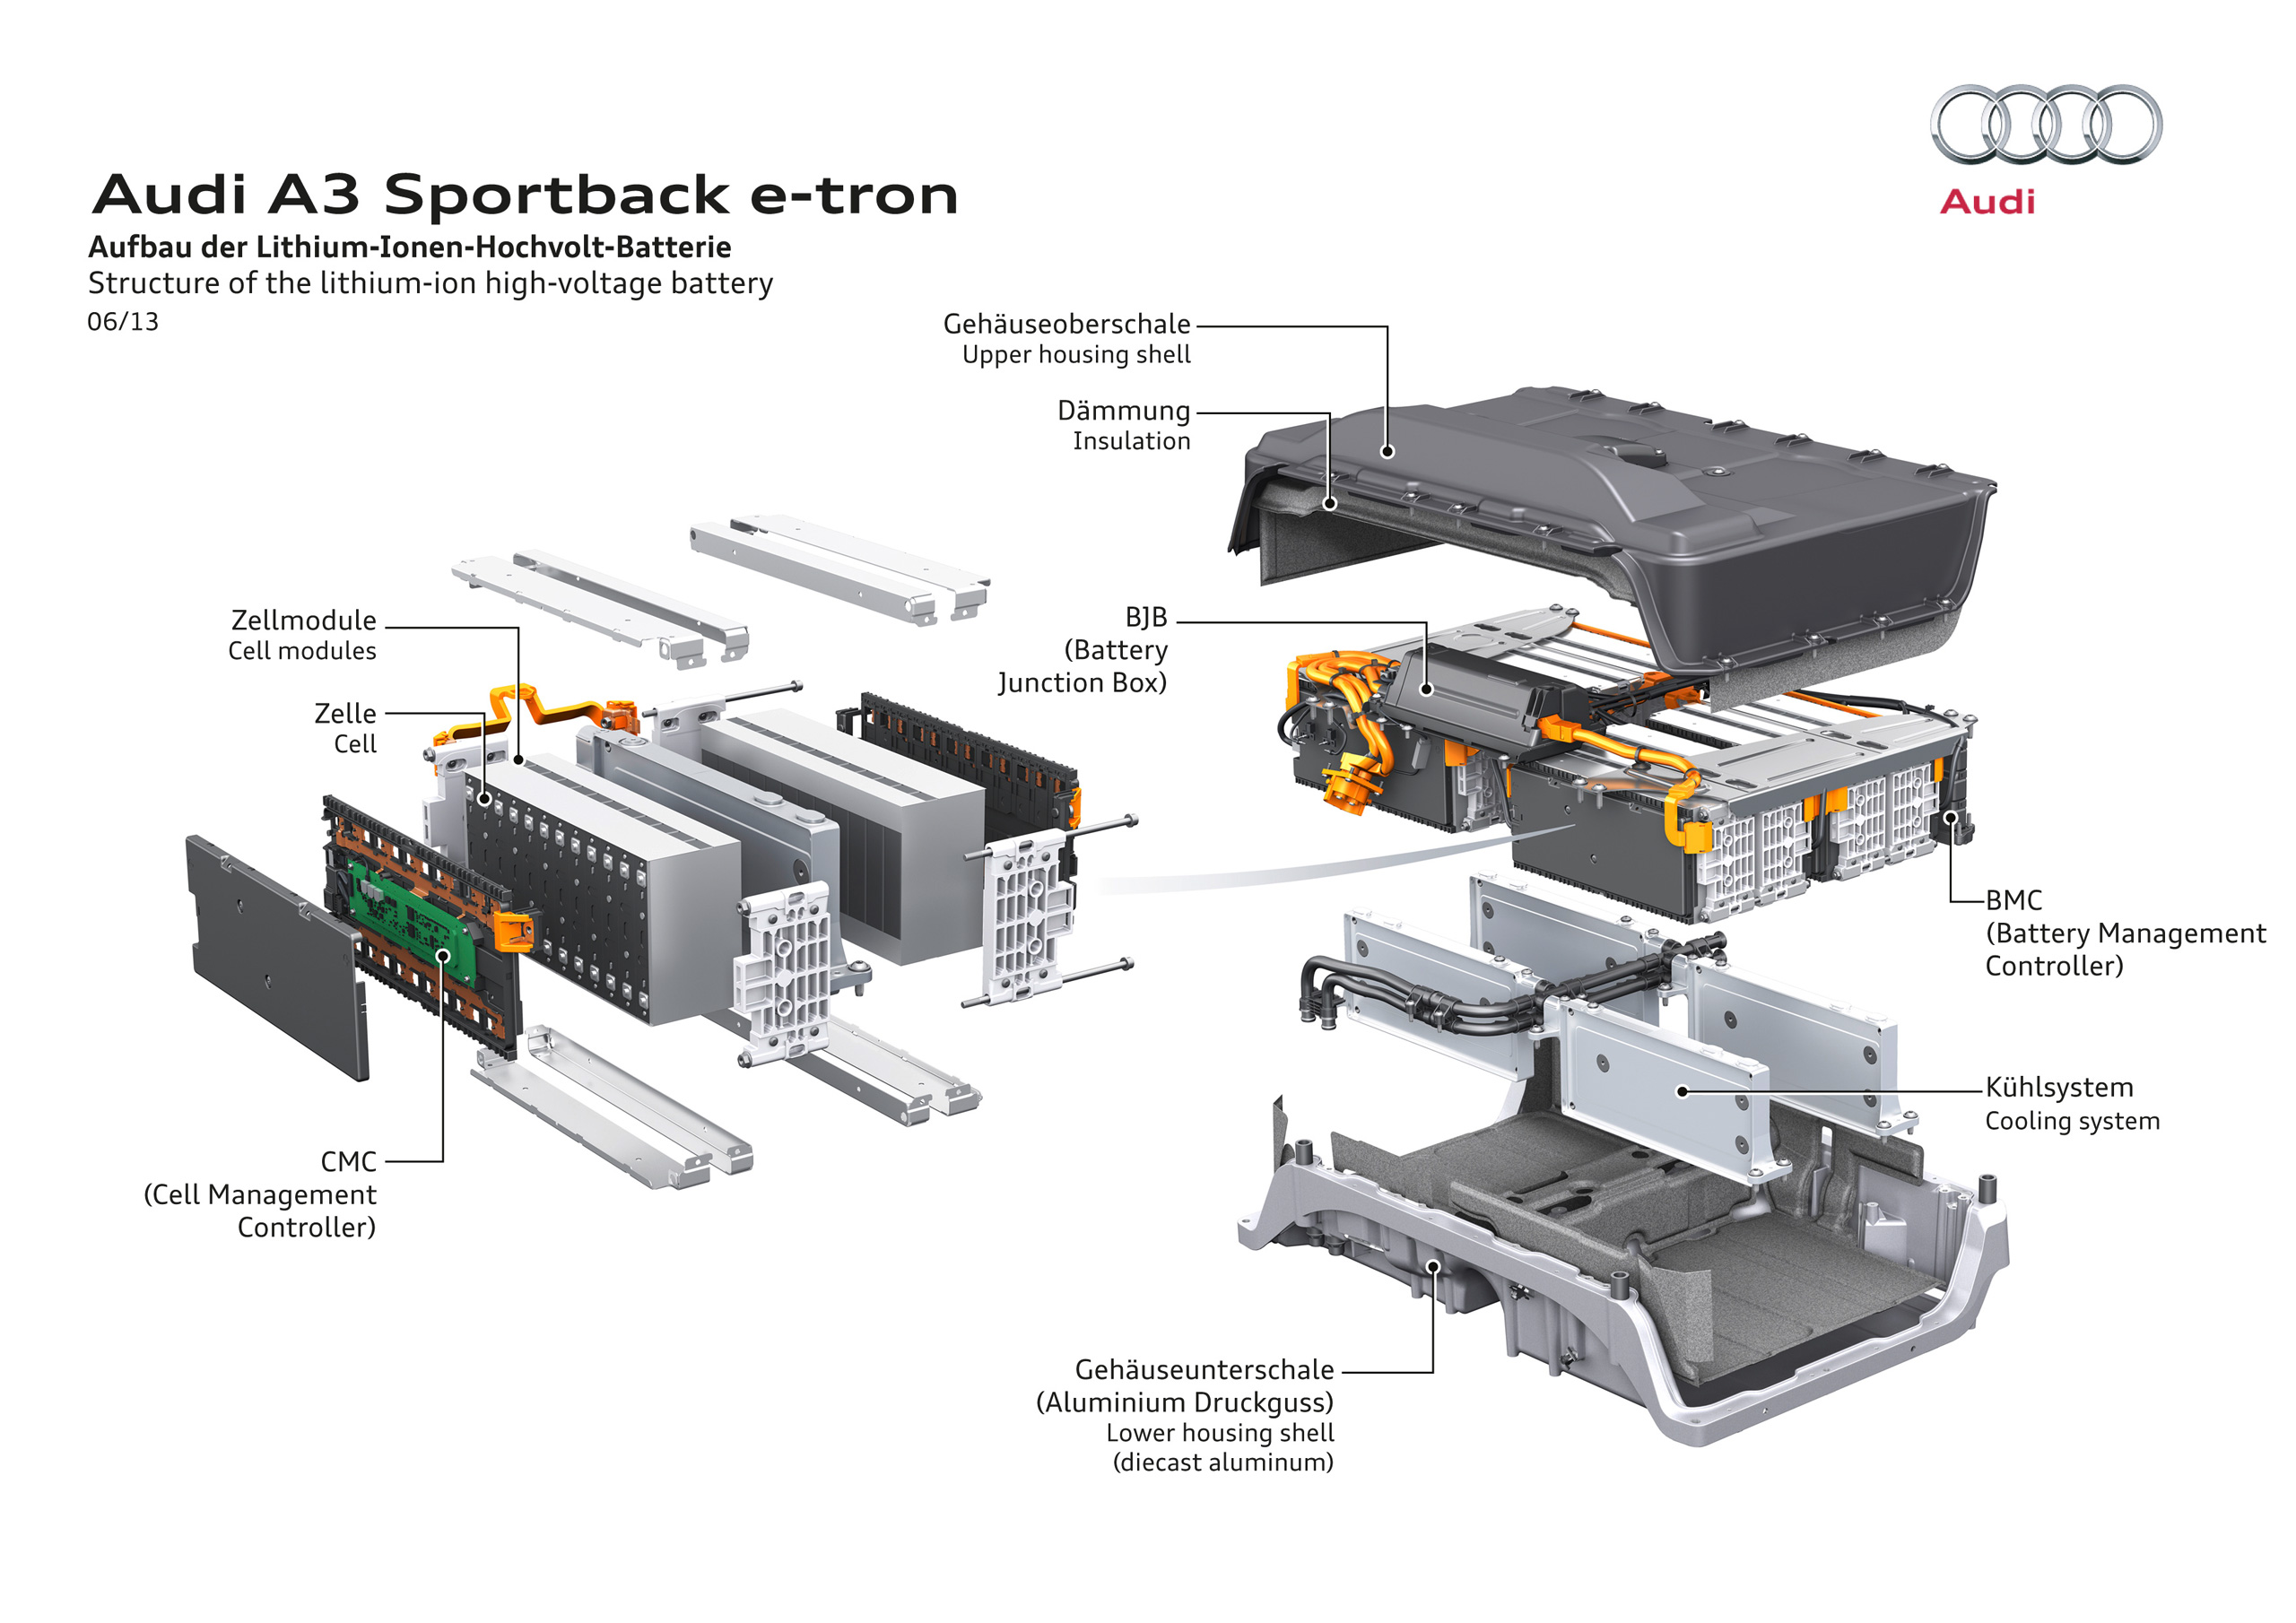 Audi A3 Sportback E Tron Enters Production Late 2013 Paul